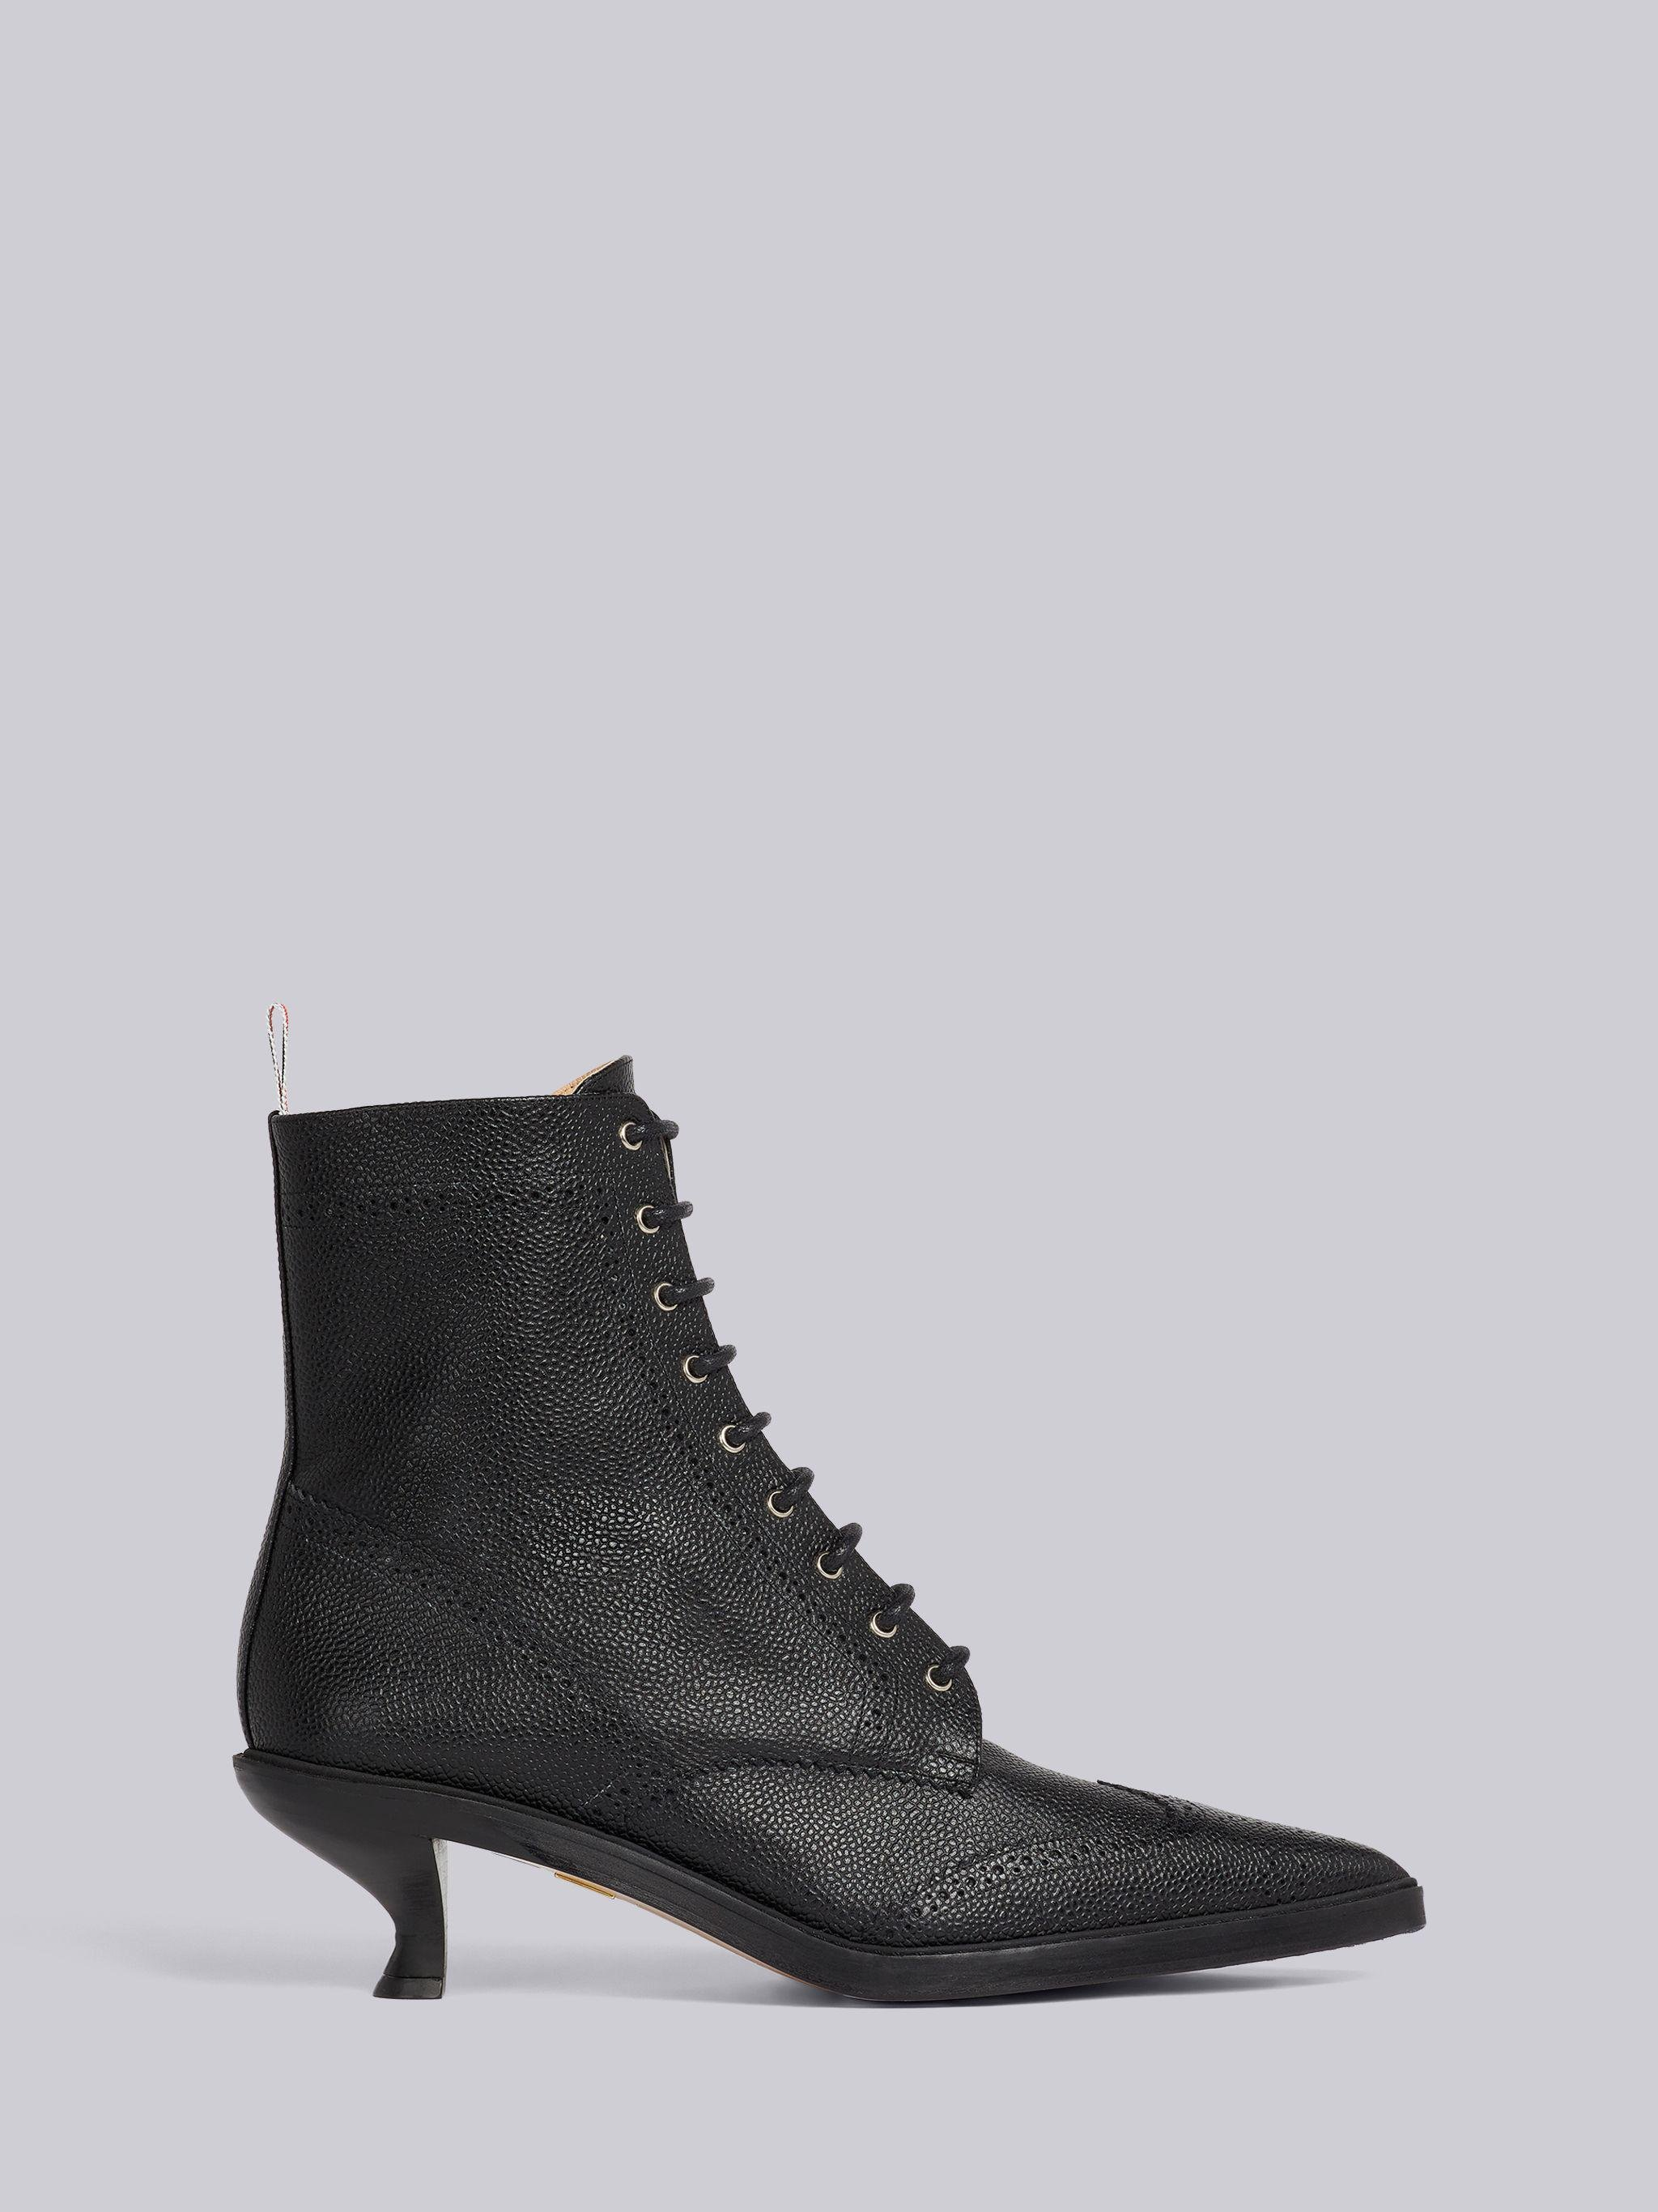 Black Pebble Grain Leather 50mm Curved Heel Lace-Up Wingtip Ankle Bootie